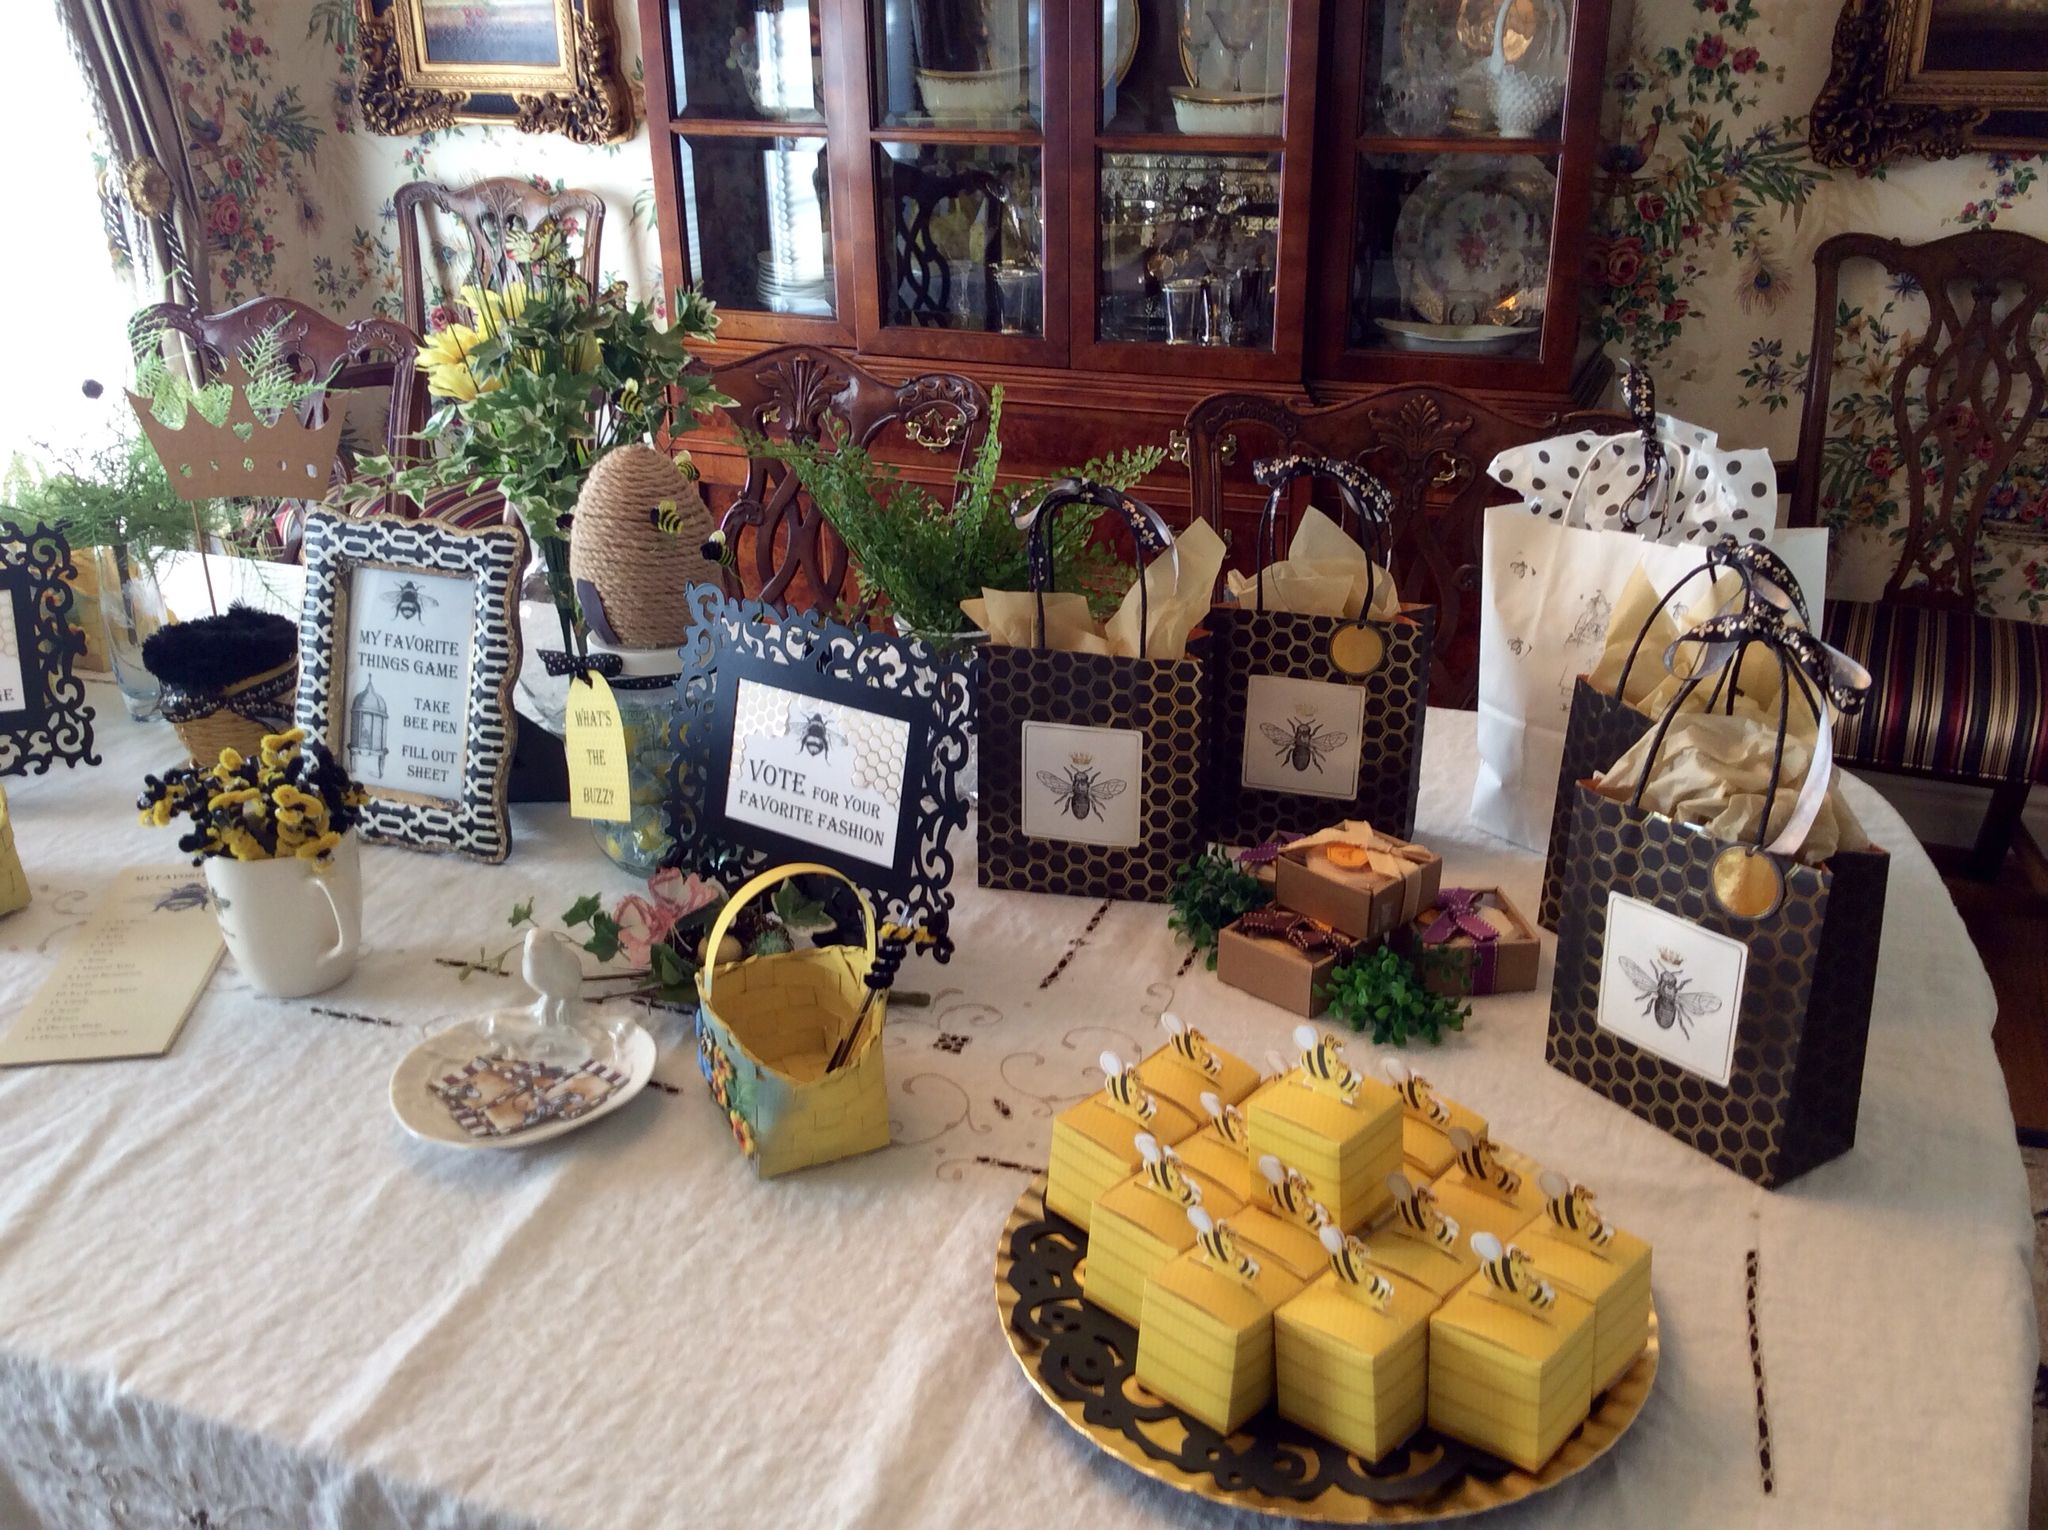 Dining room table set up with games, prizes and favors for Queen Bee, My Favorite Things Party.